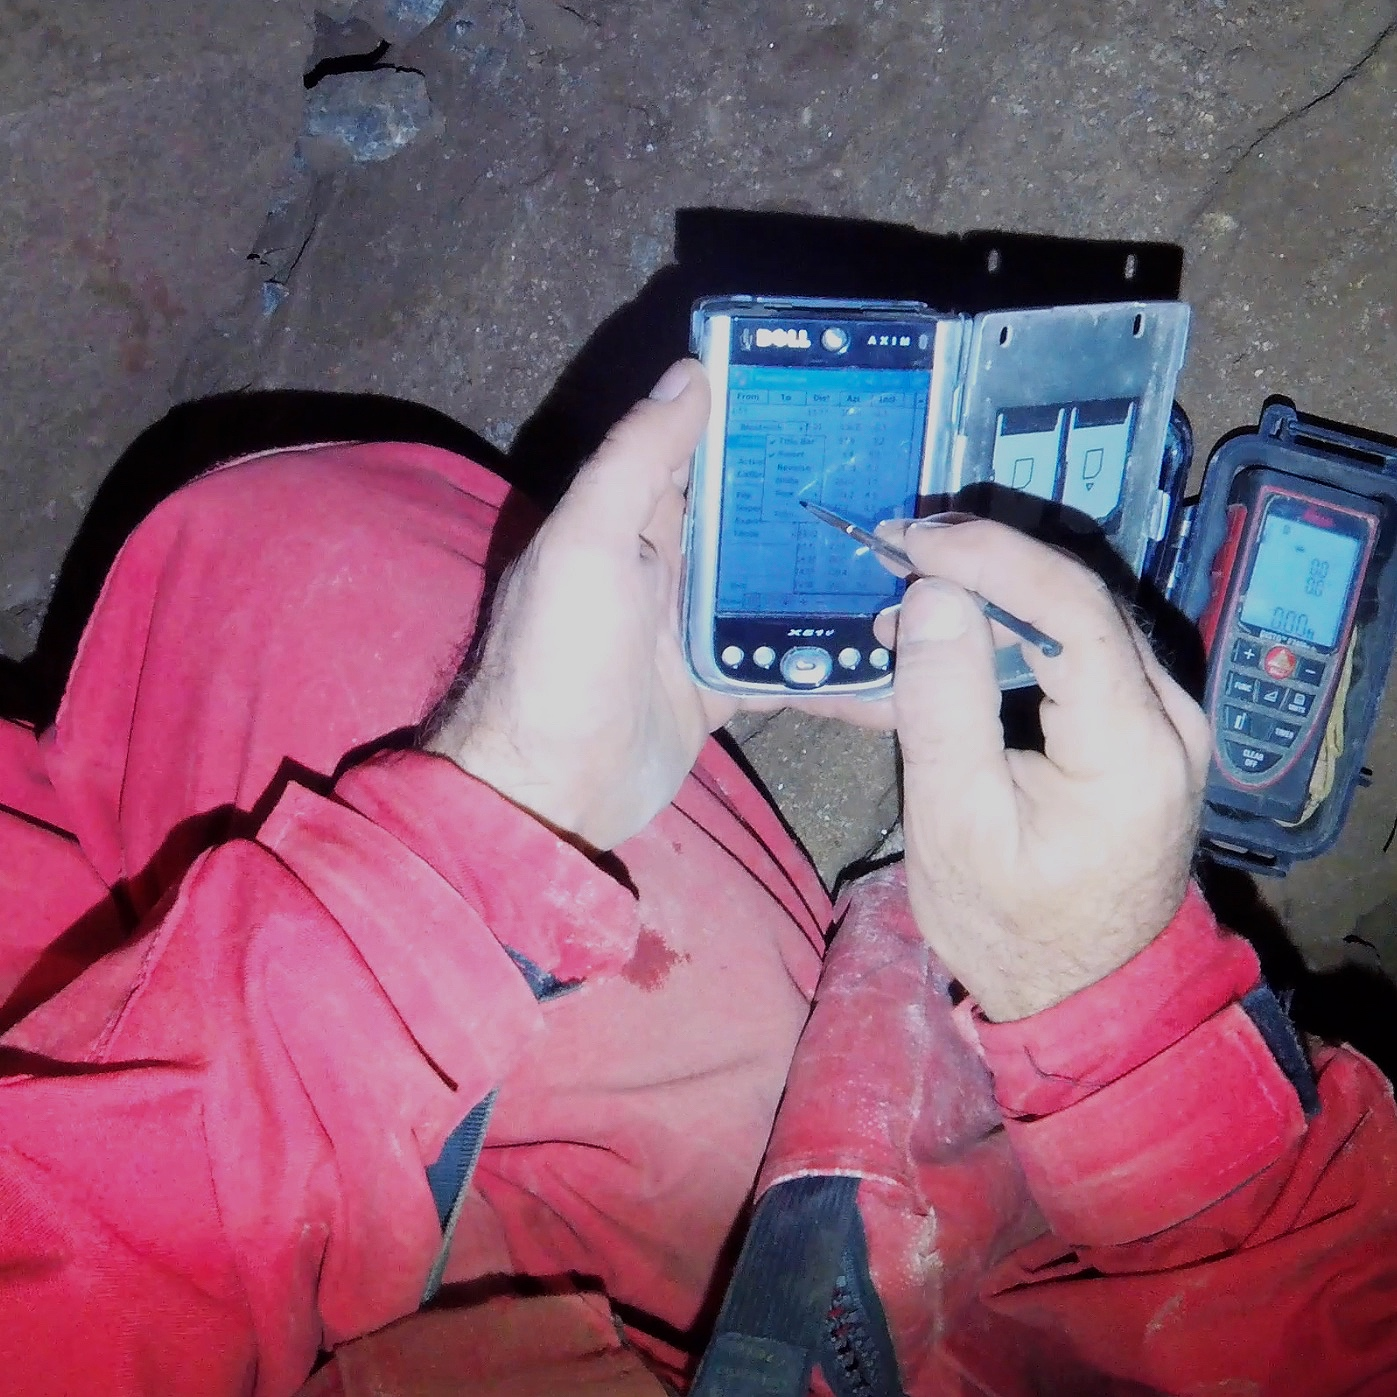 Electronic / digital cave survey - A Disto-X2 can be utilized with devices such as Android phones or tablets, Palm OS PDAs, or Windows Mobile devices to both capture survey data and create digital sketches underground.